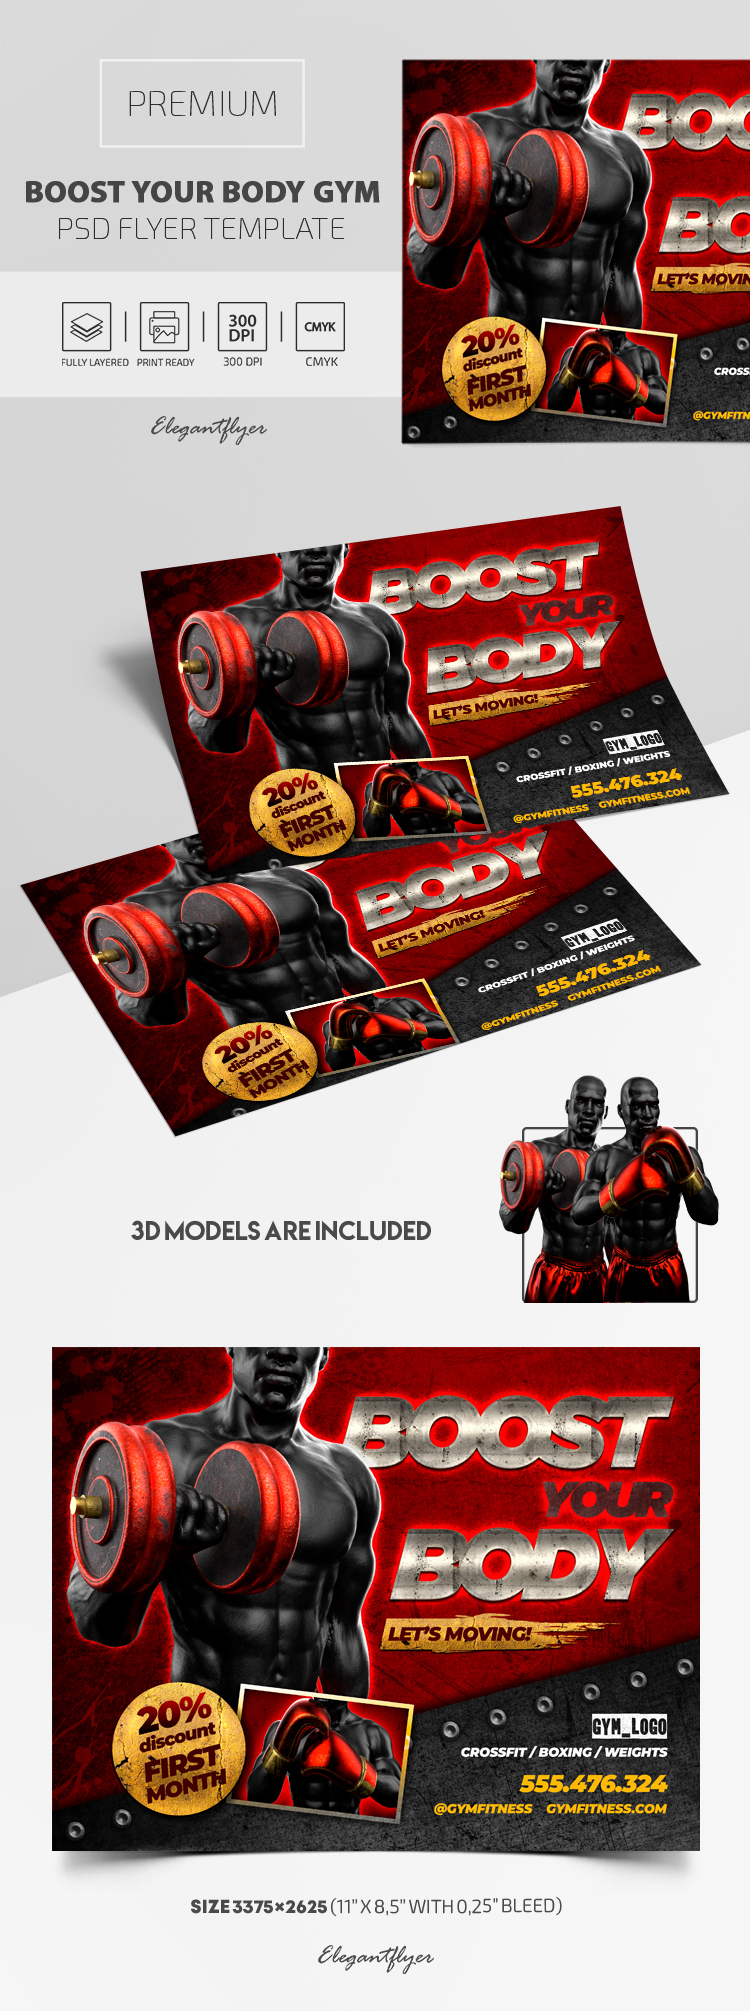 Boost Your Body GYM – Premium PSD Flyer Template